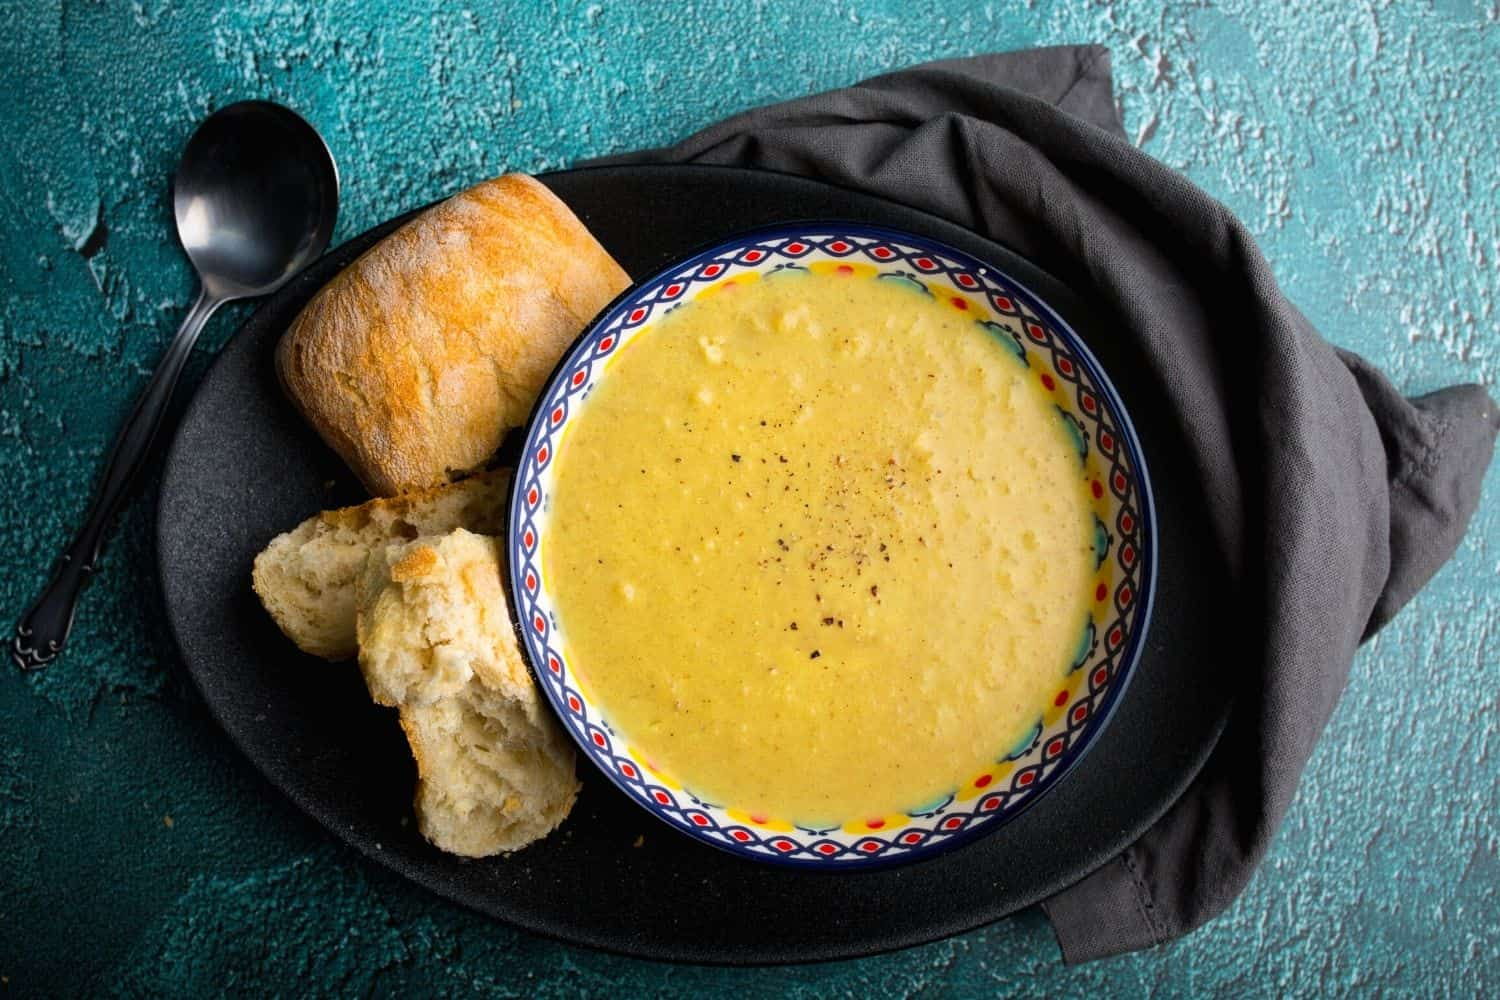 Roasted Cauliflower Soup with Freshly Baked Bread